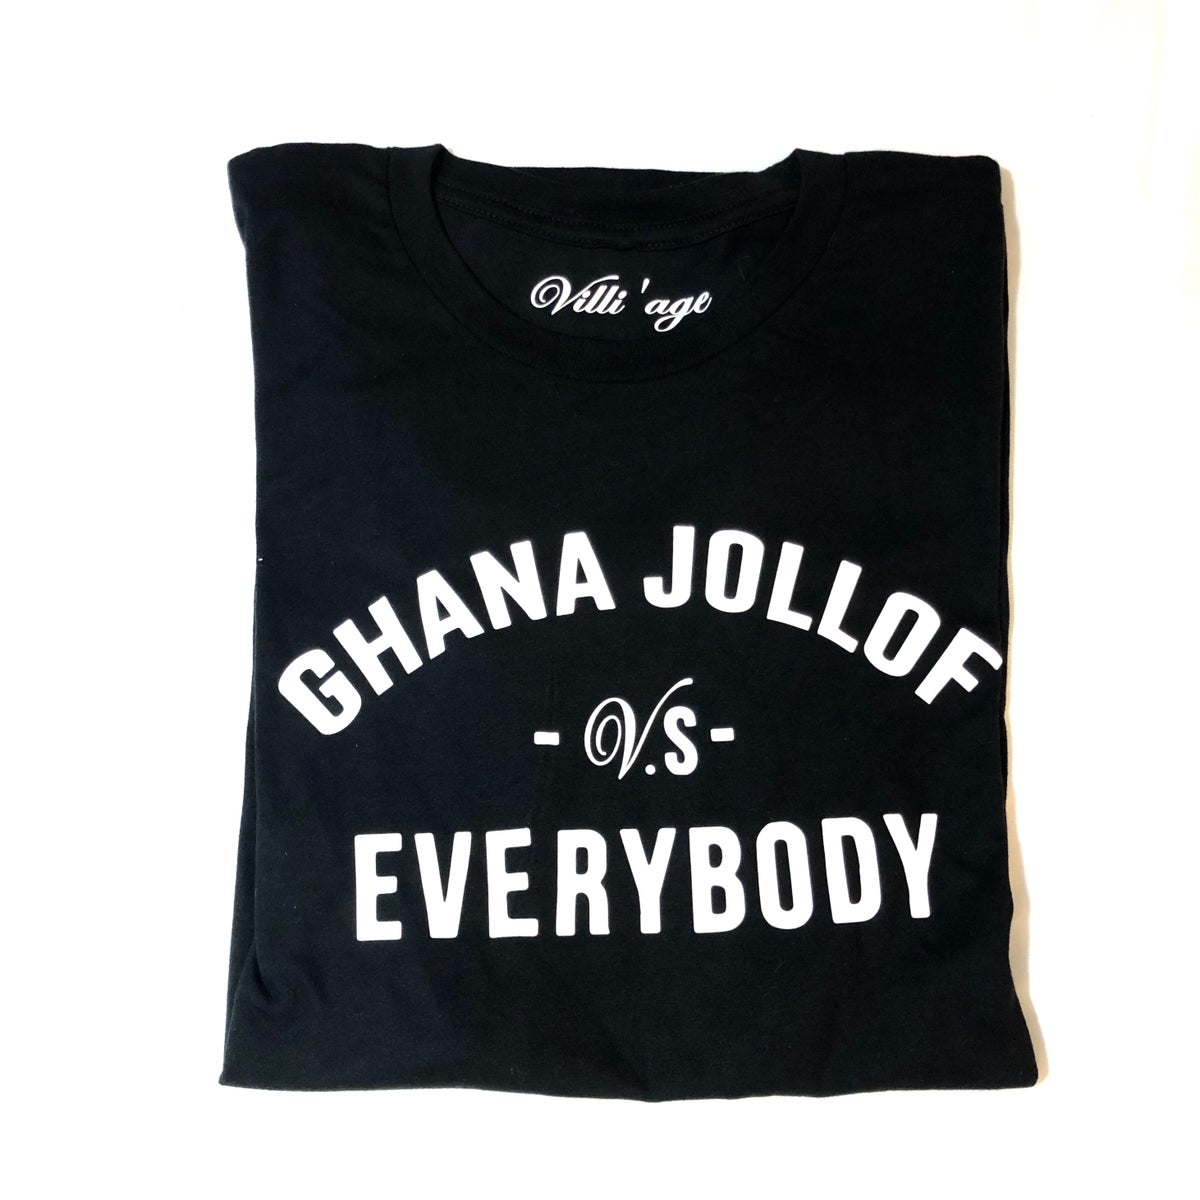 Ghana Jollof VS Everybody Tee